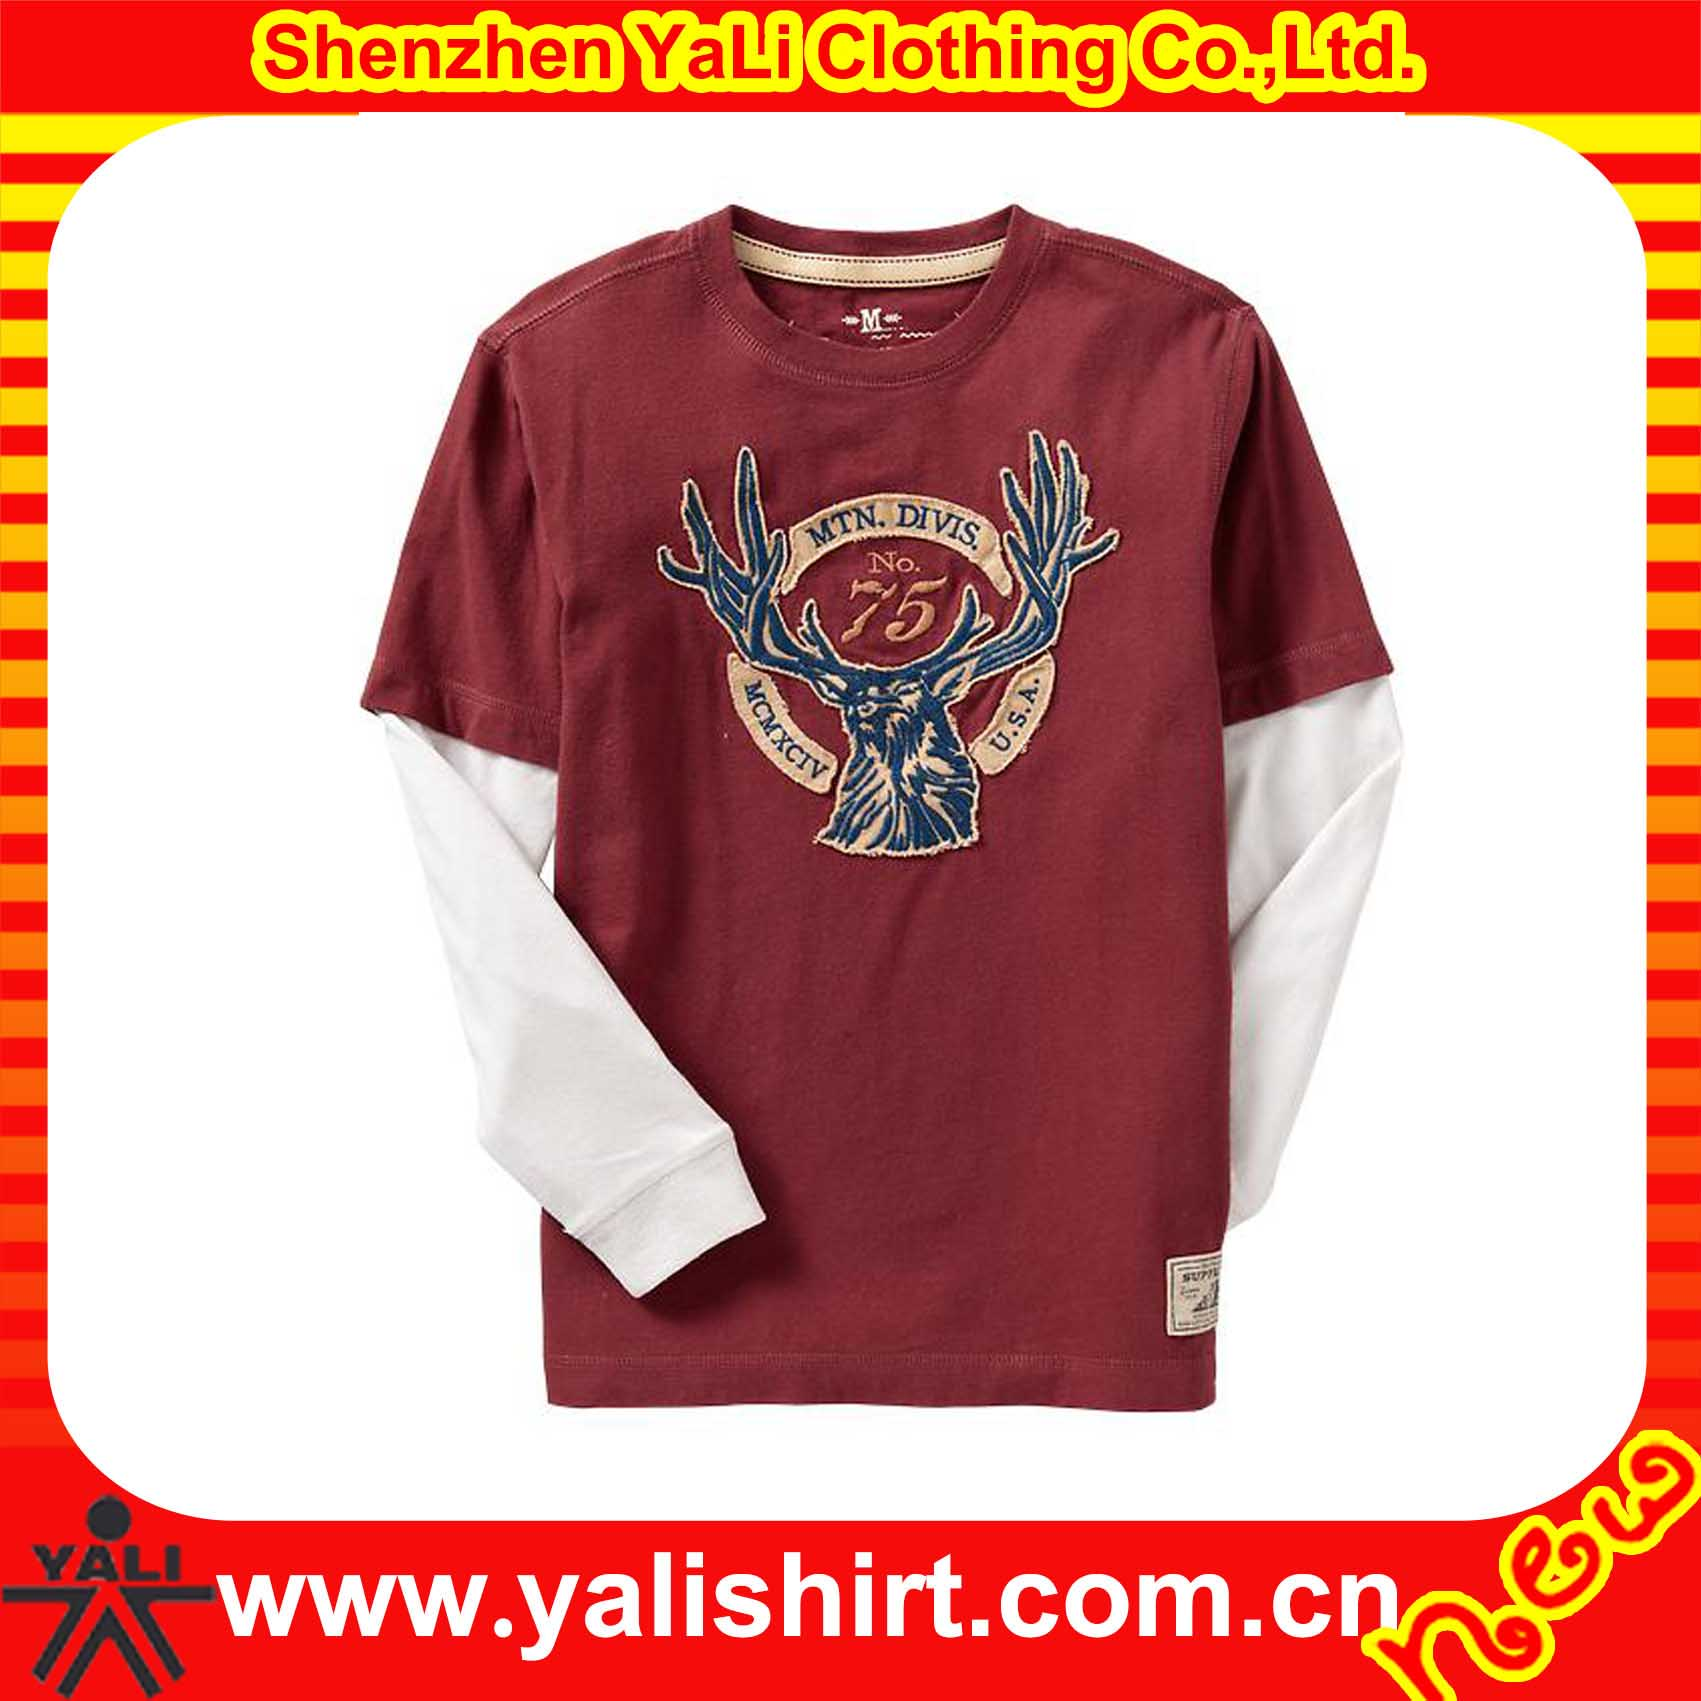 Design t shirt logo online - Custom Applique T Shirts Logo Design Buy T Shirts Logo Design T Shirt Stitching Logo Superman Logo T Shirt Product On Alibaba Com